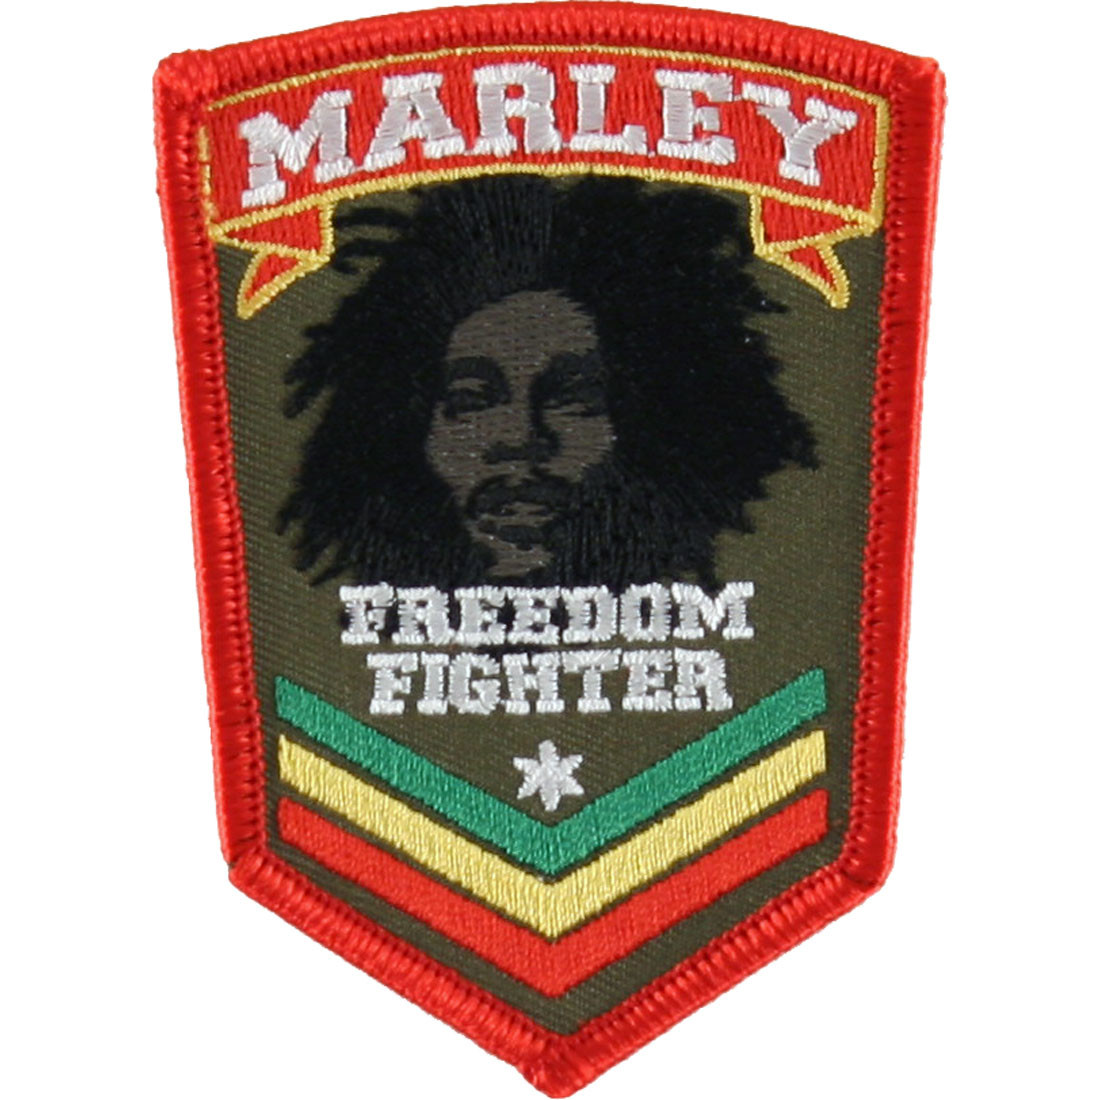 Marley Stripes Patch